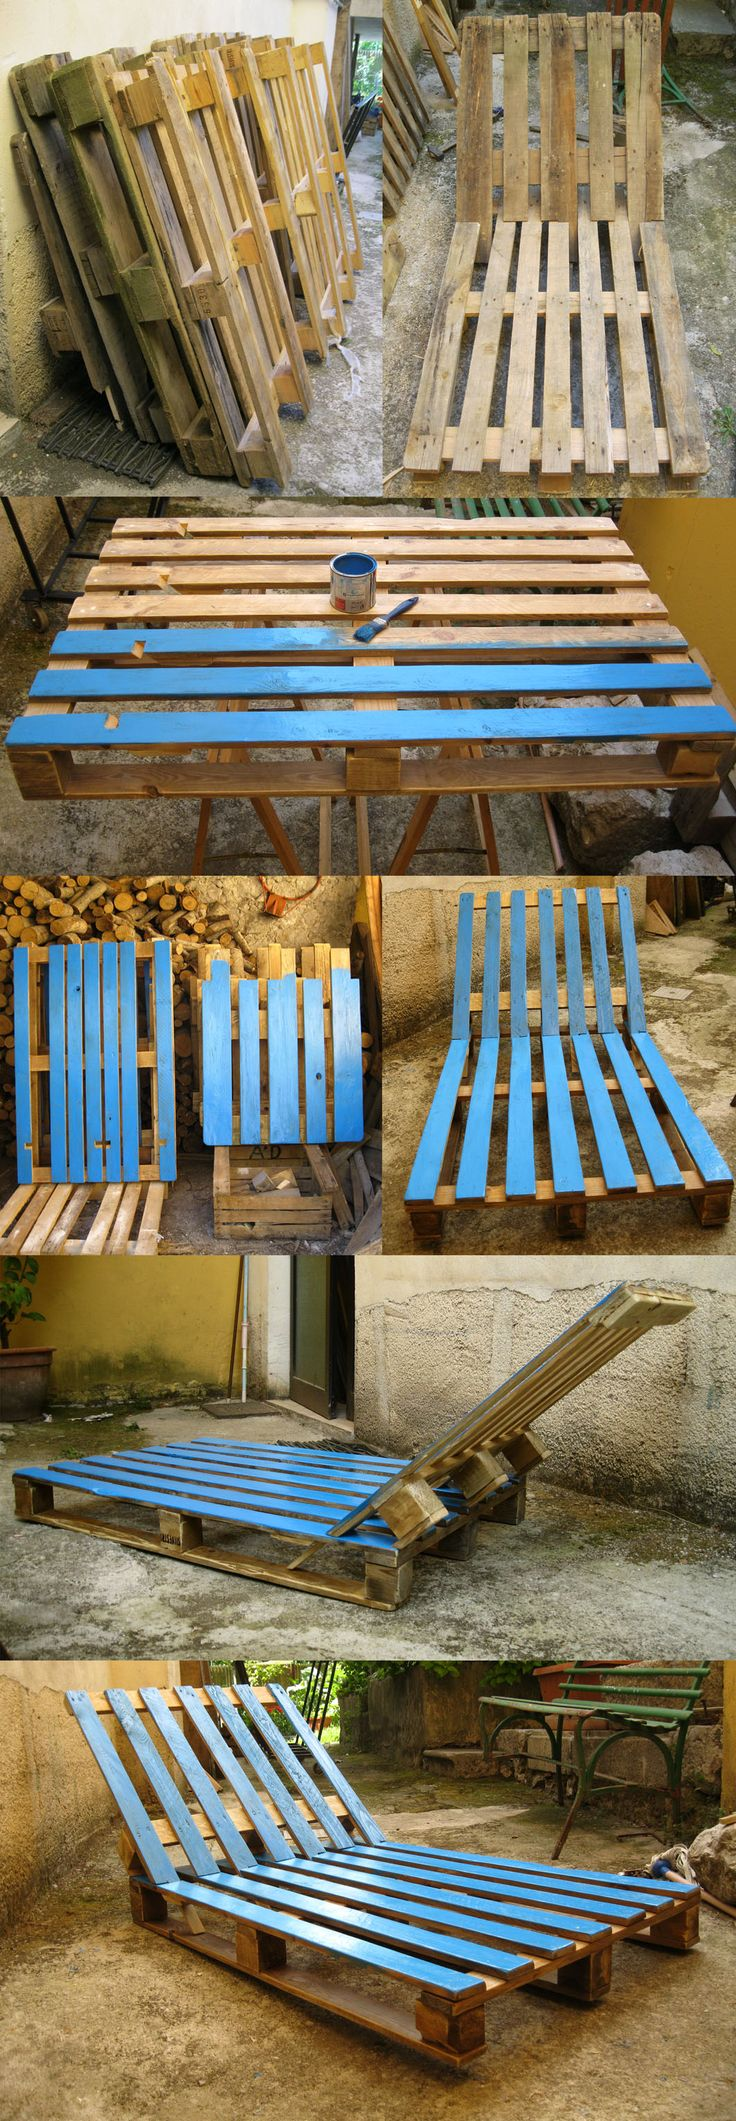 08_2015 Sdraio piscina - pallet deckchairs for garden and swimming pool